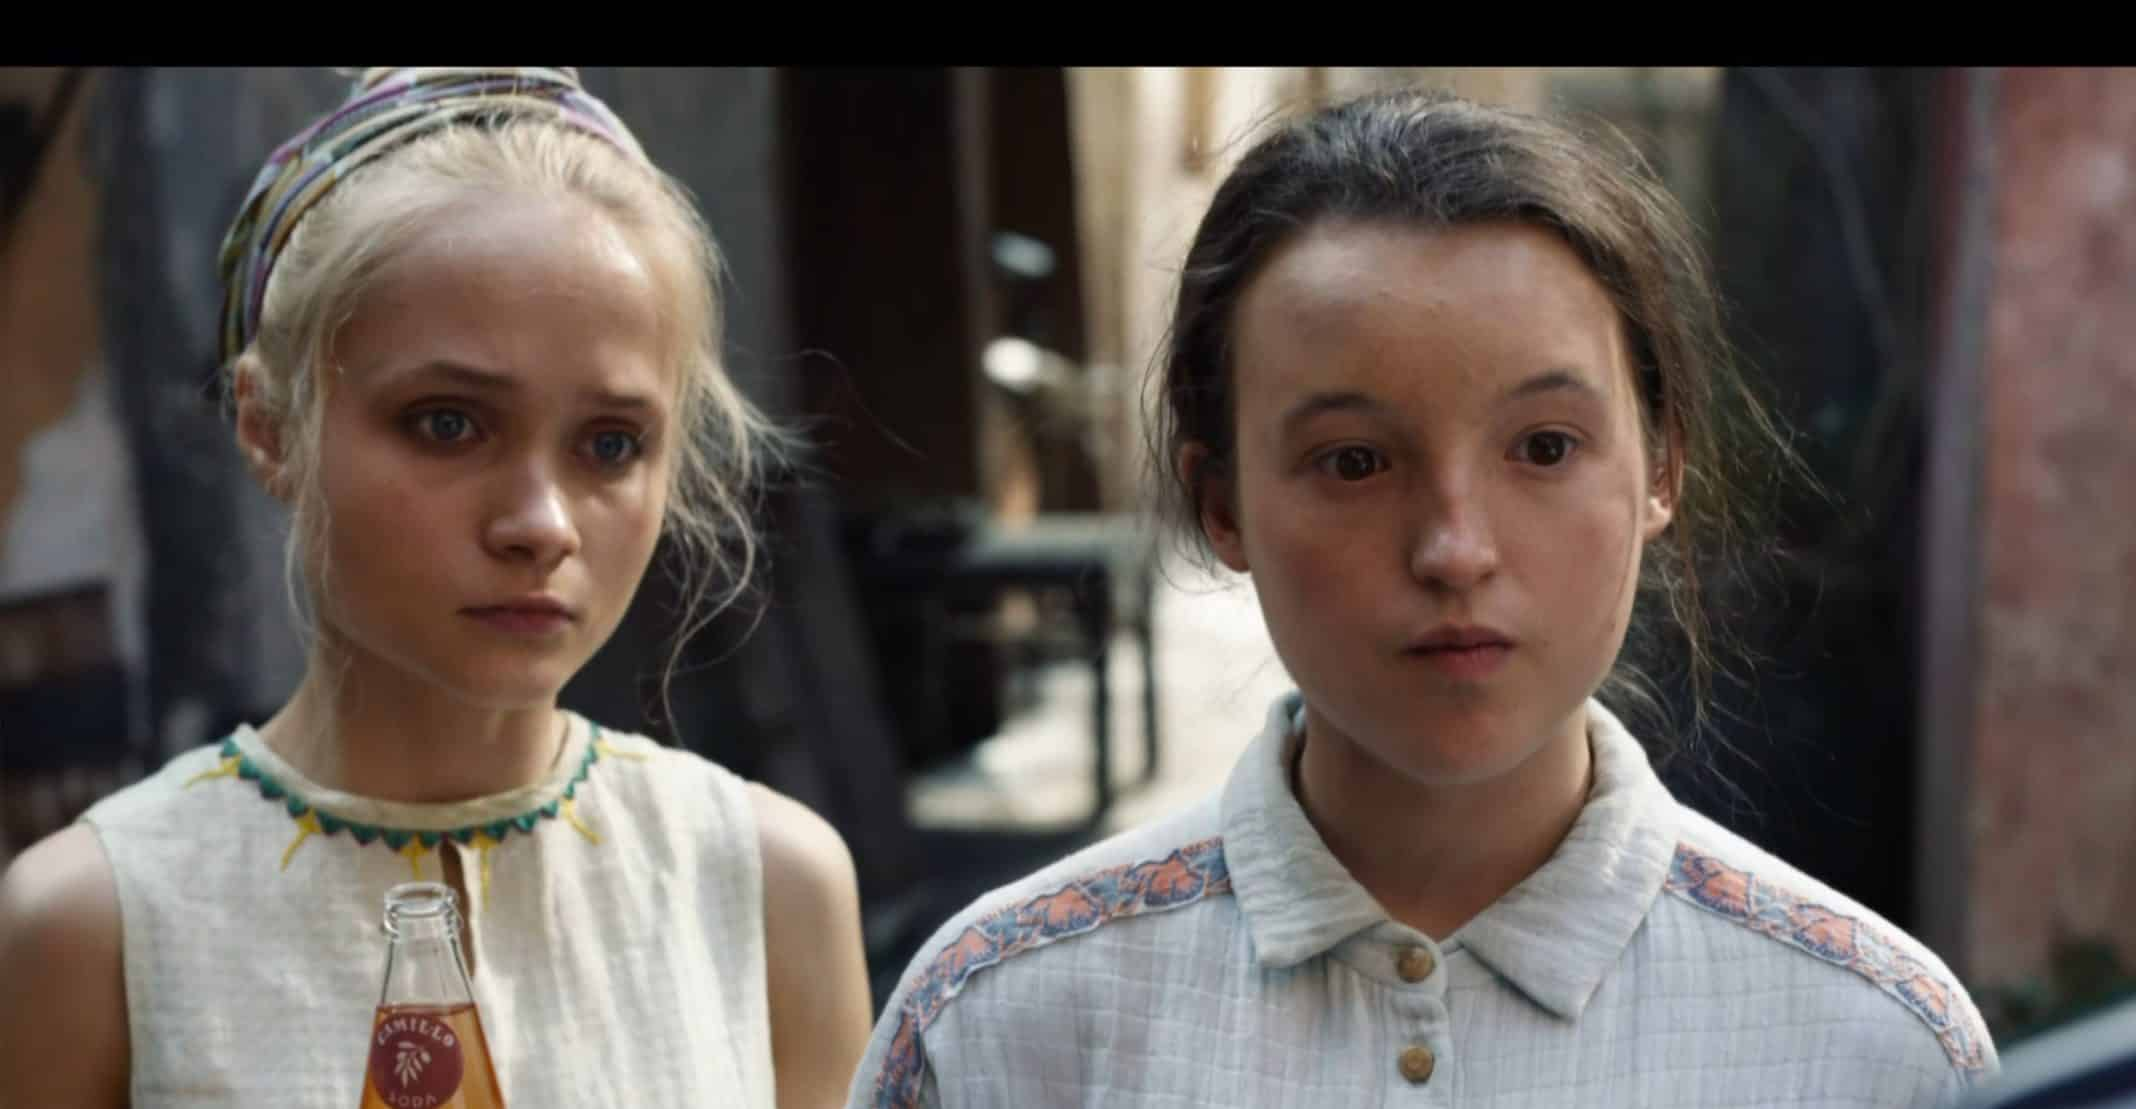 Paola (Ella Schrey-Yeats) and Angelica (Bella Ramsey) talking to Will and Lyra